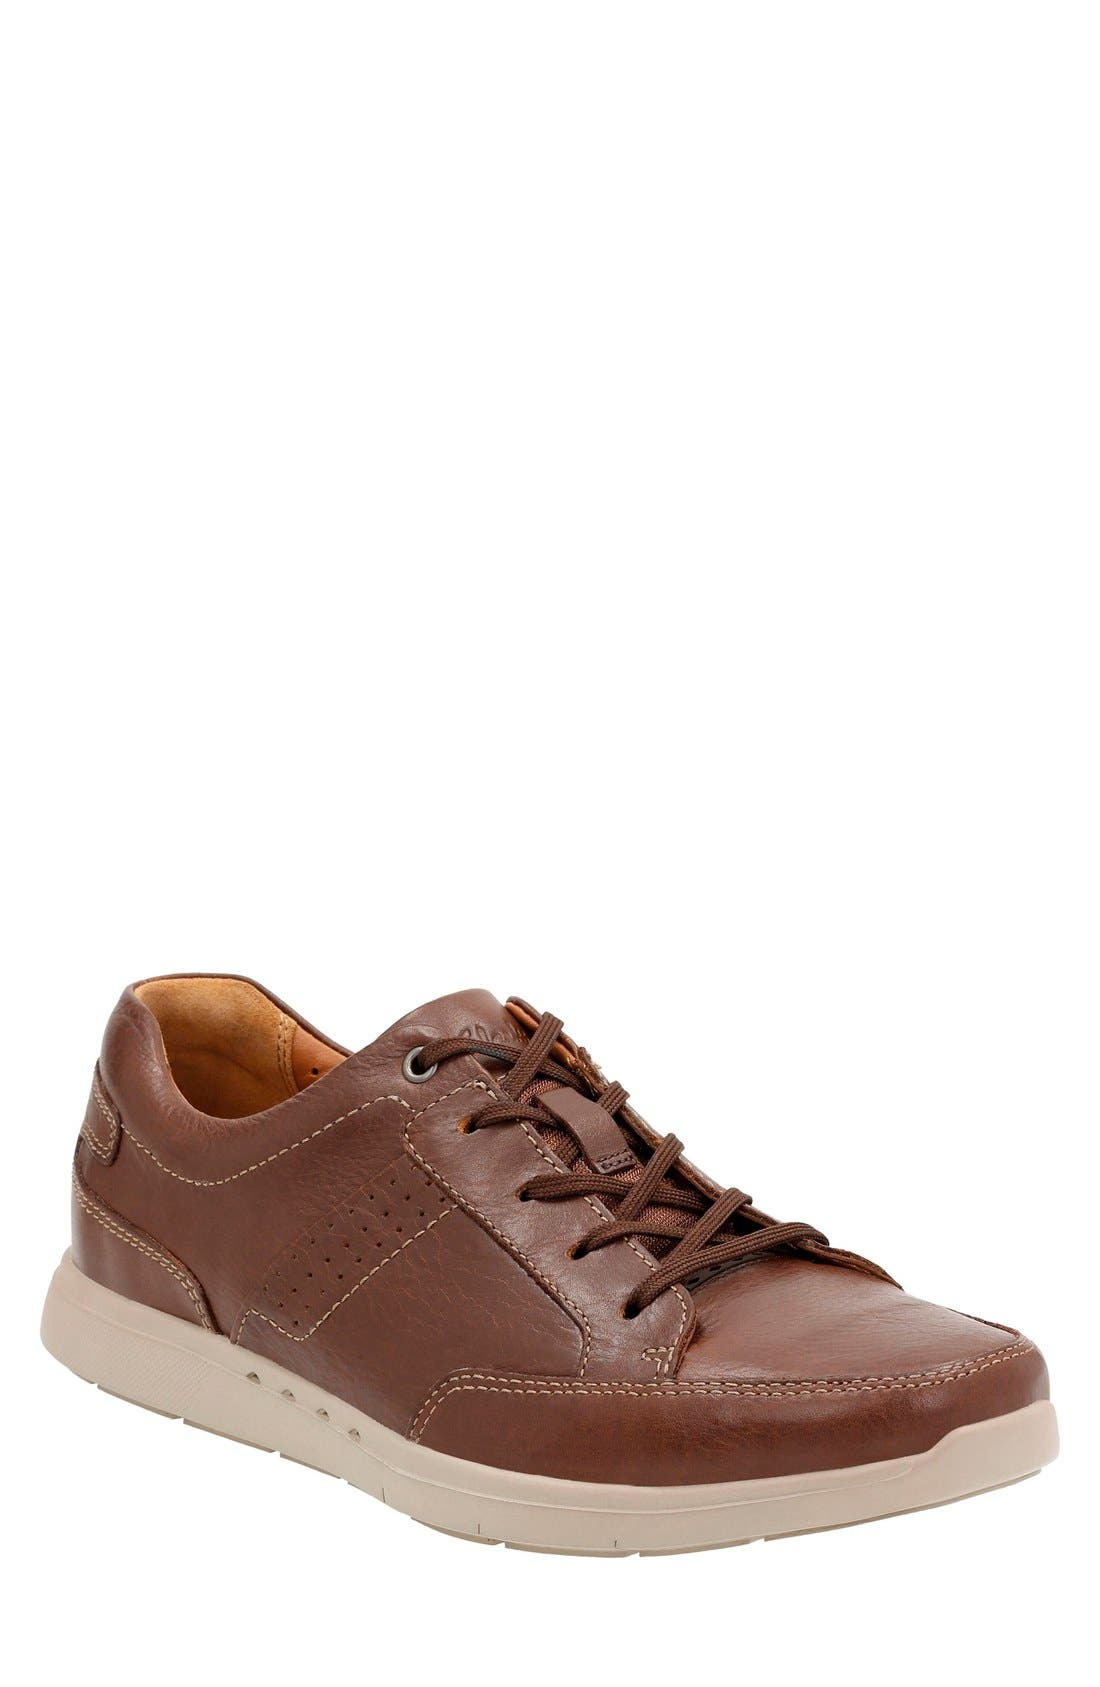 'Unstructured - Lomac' Leather Sneaker,                         Main,                         color, Tan